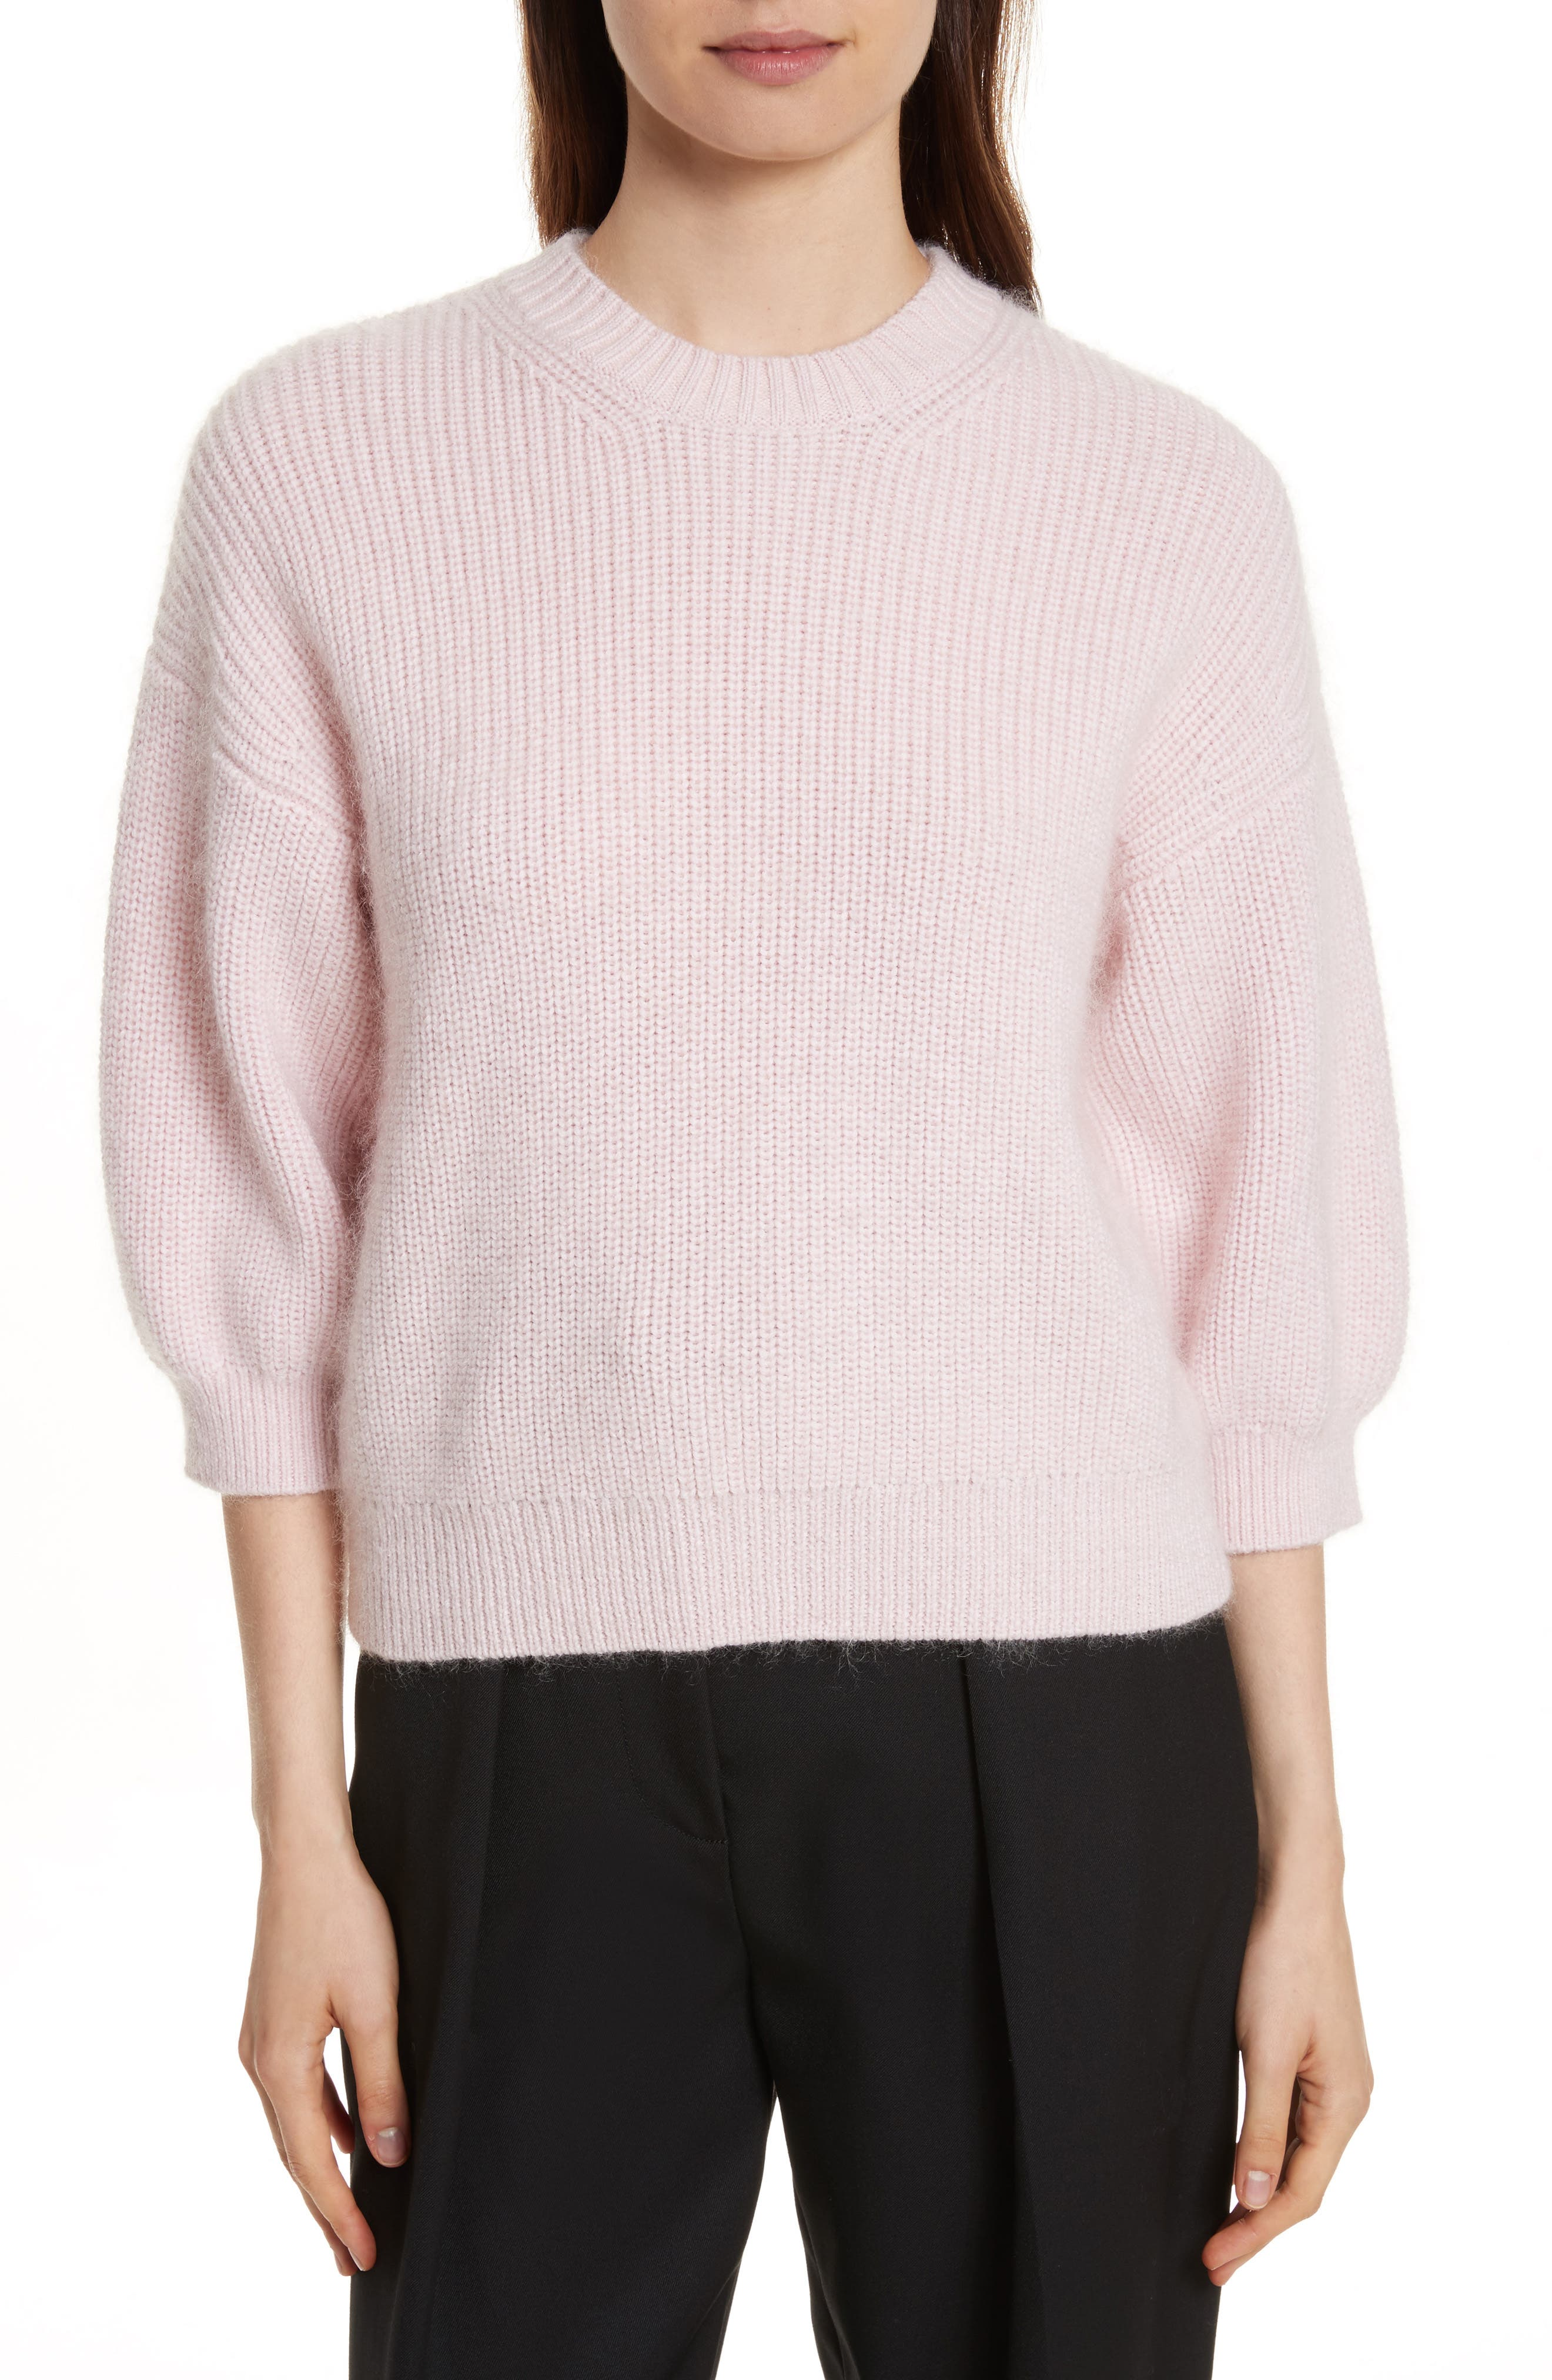 Main Image - 3.1 Phillip Lim Puff Sleeve Wool & Mohair Blend Sweater